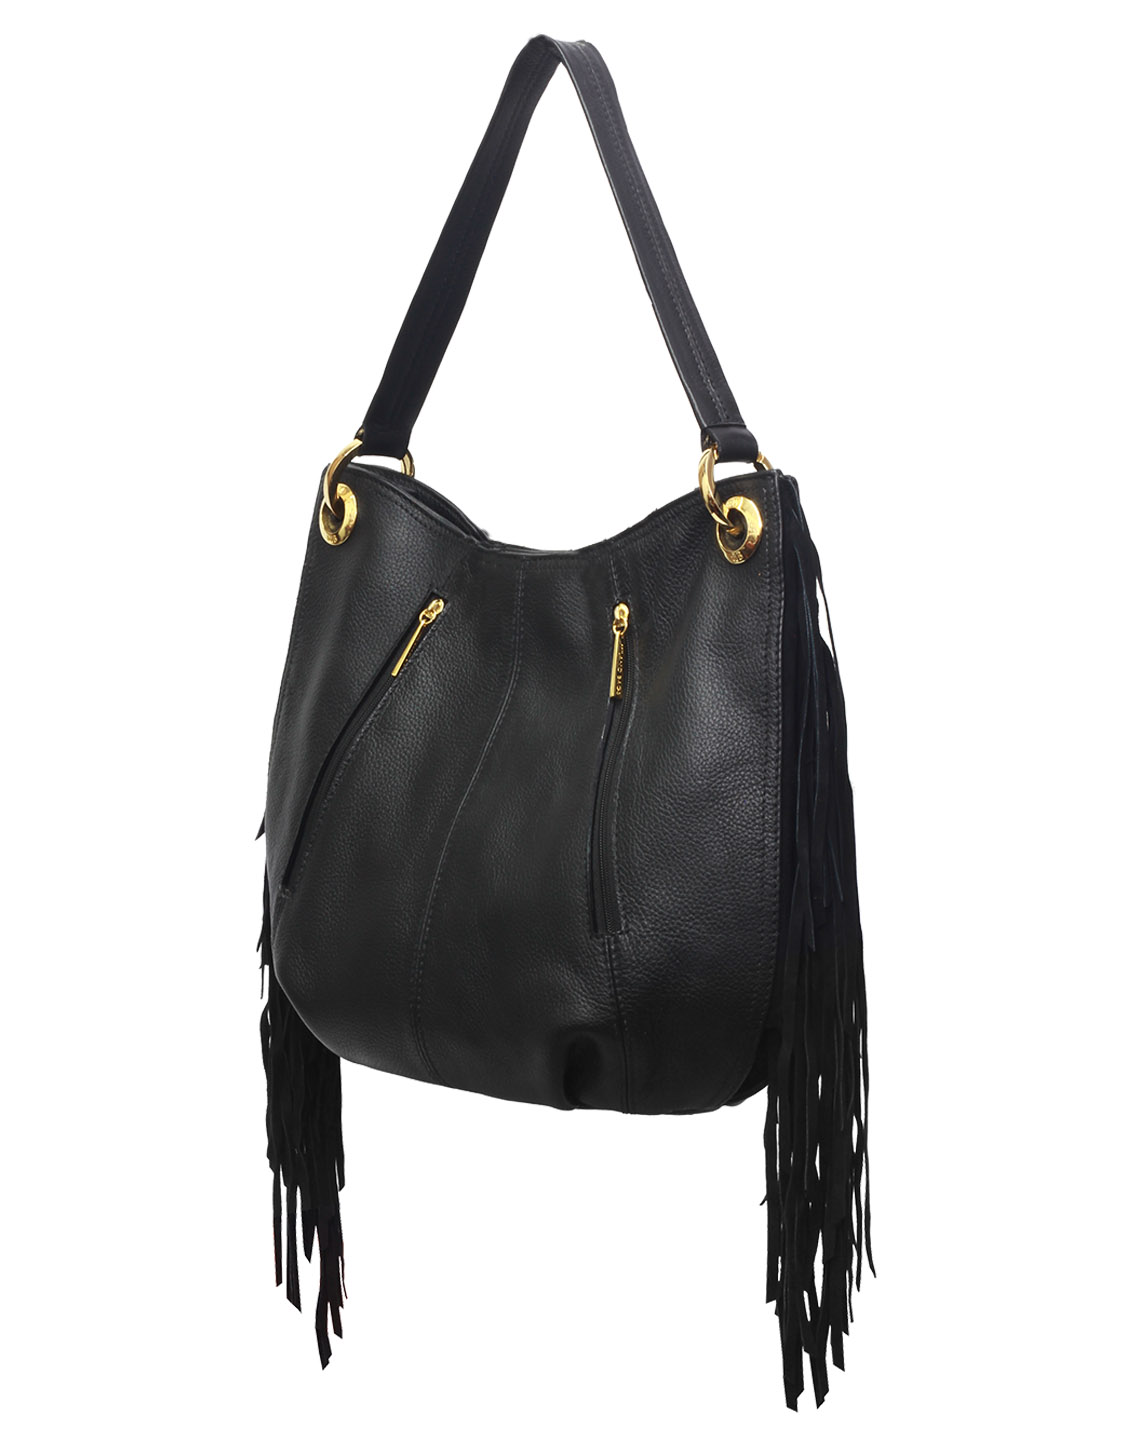 Cartera Tote Bag DS-2469 Color Negro